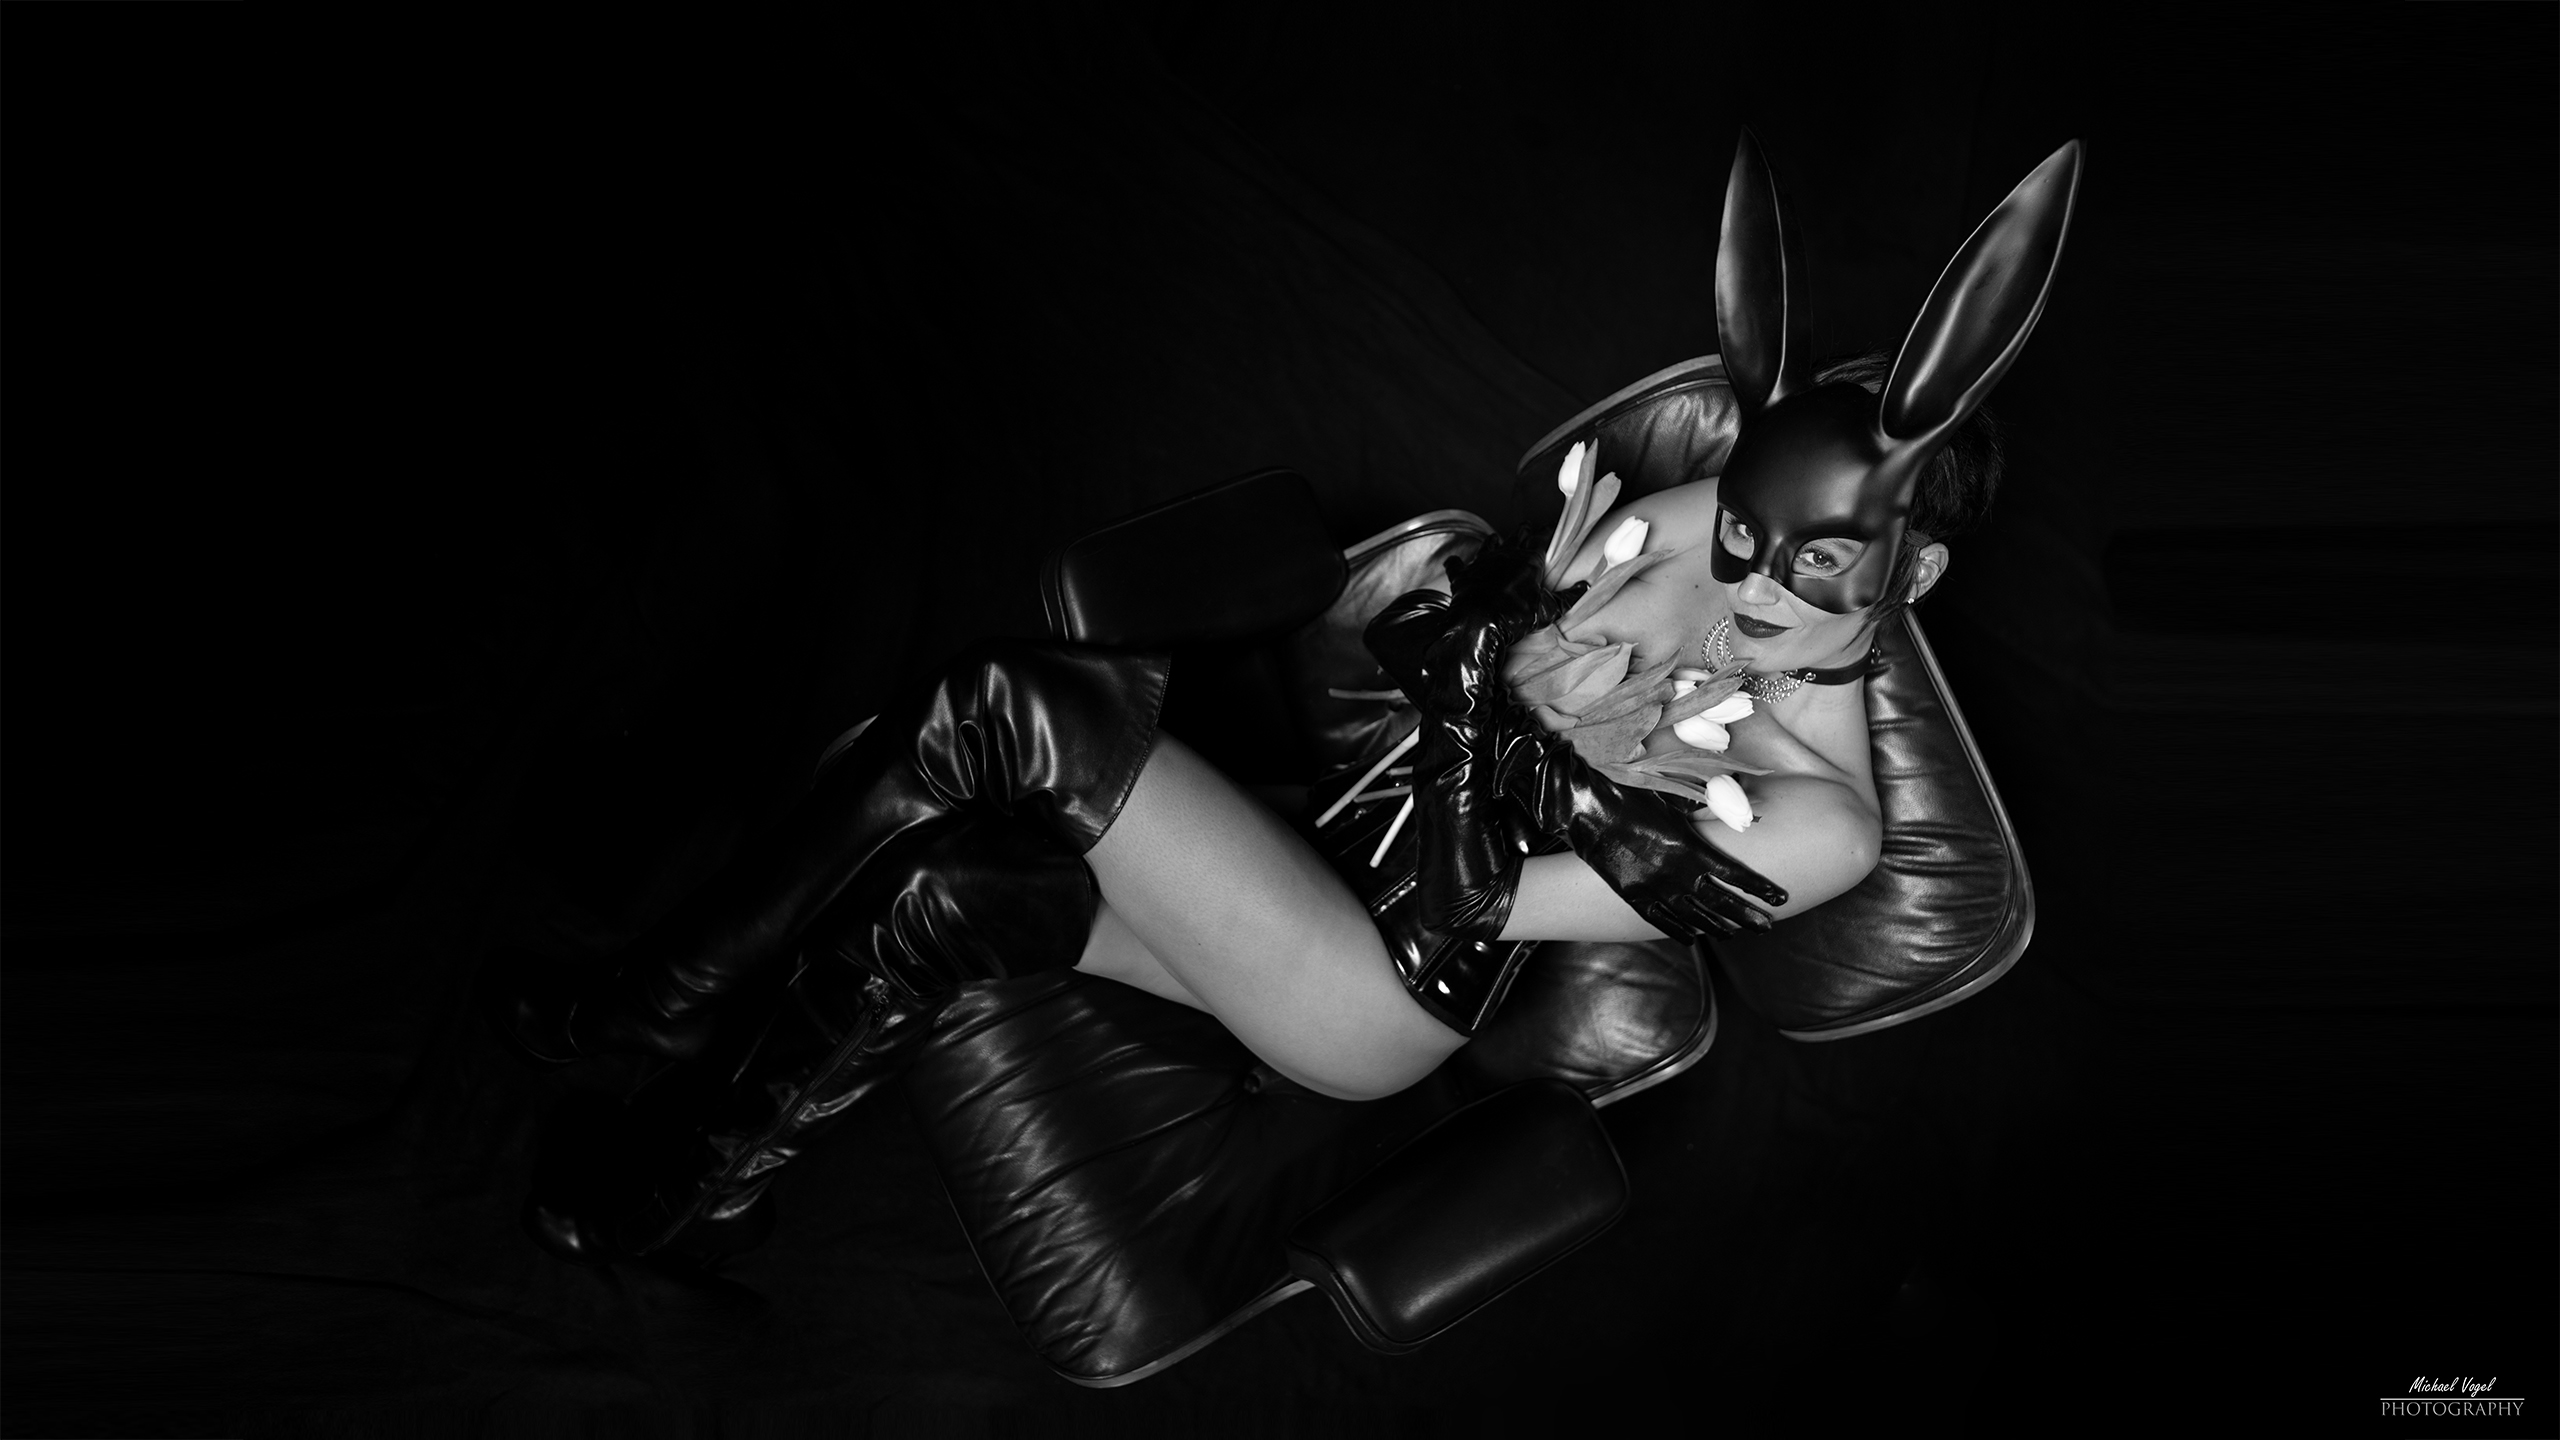 Fetish bunny with tulips - black and white edition